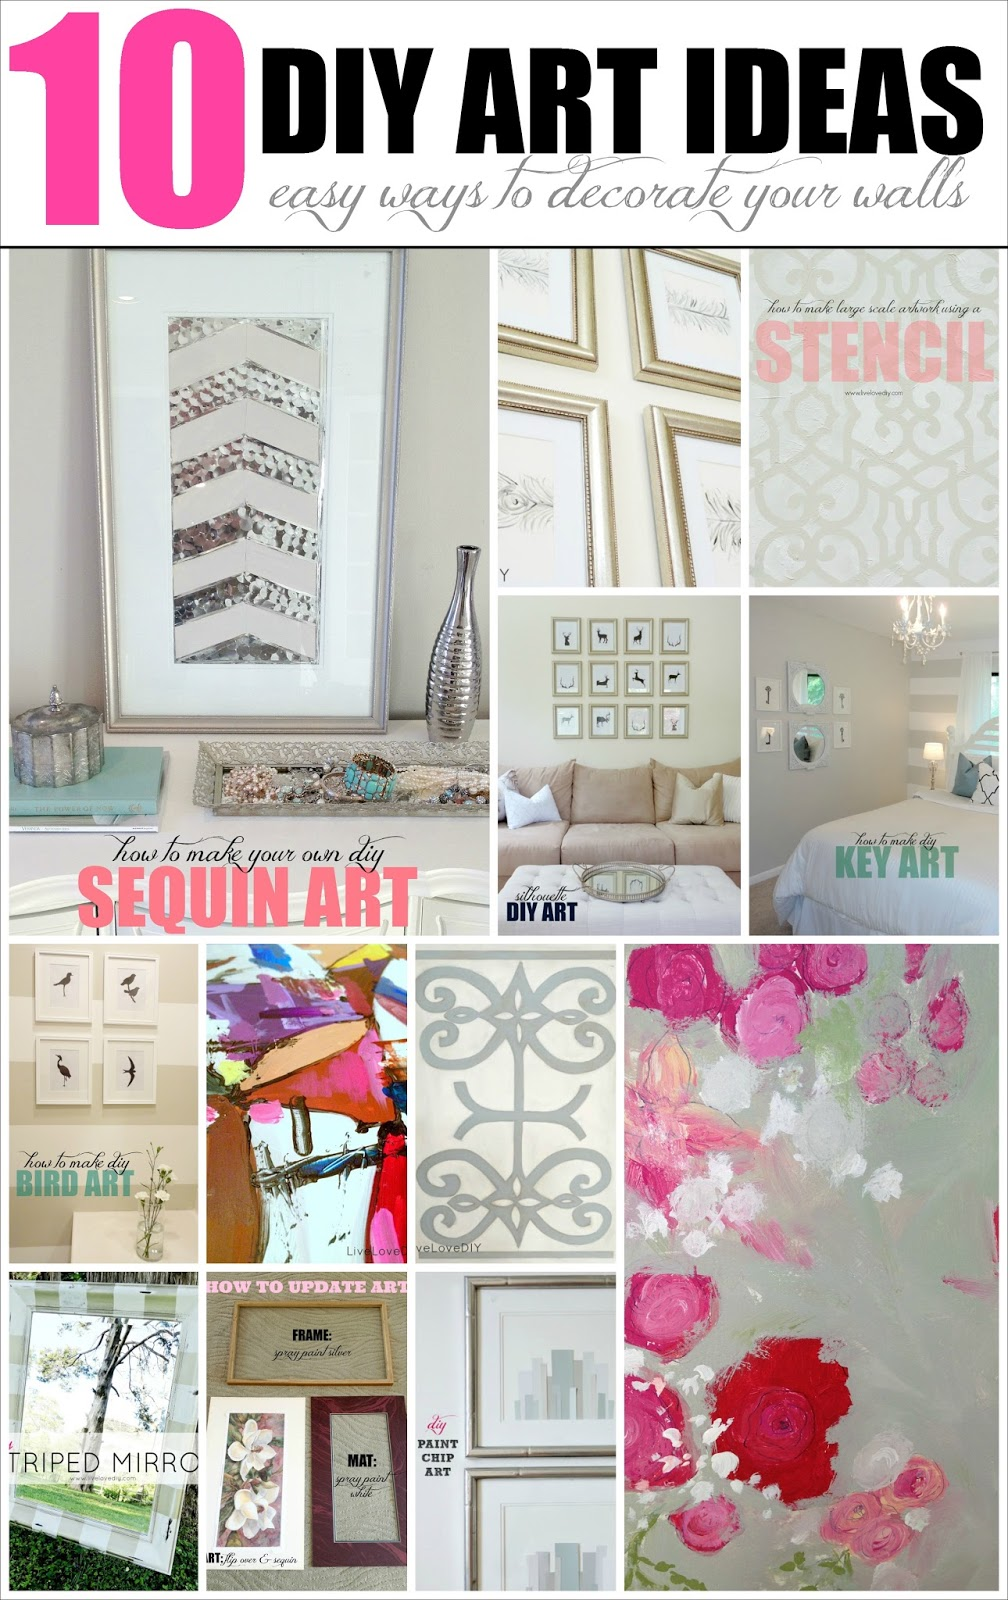 Diy Bedroom Wall Decorating Ideas Pinterest Best 20 Family wall